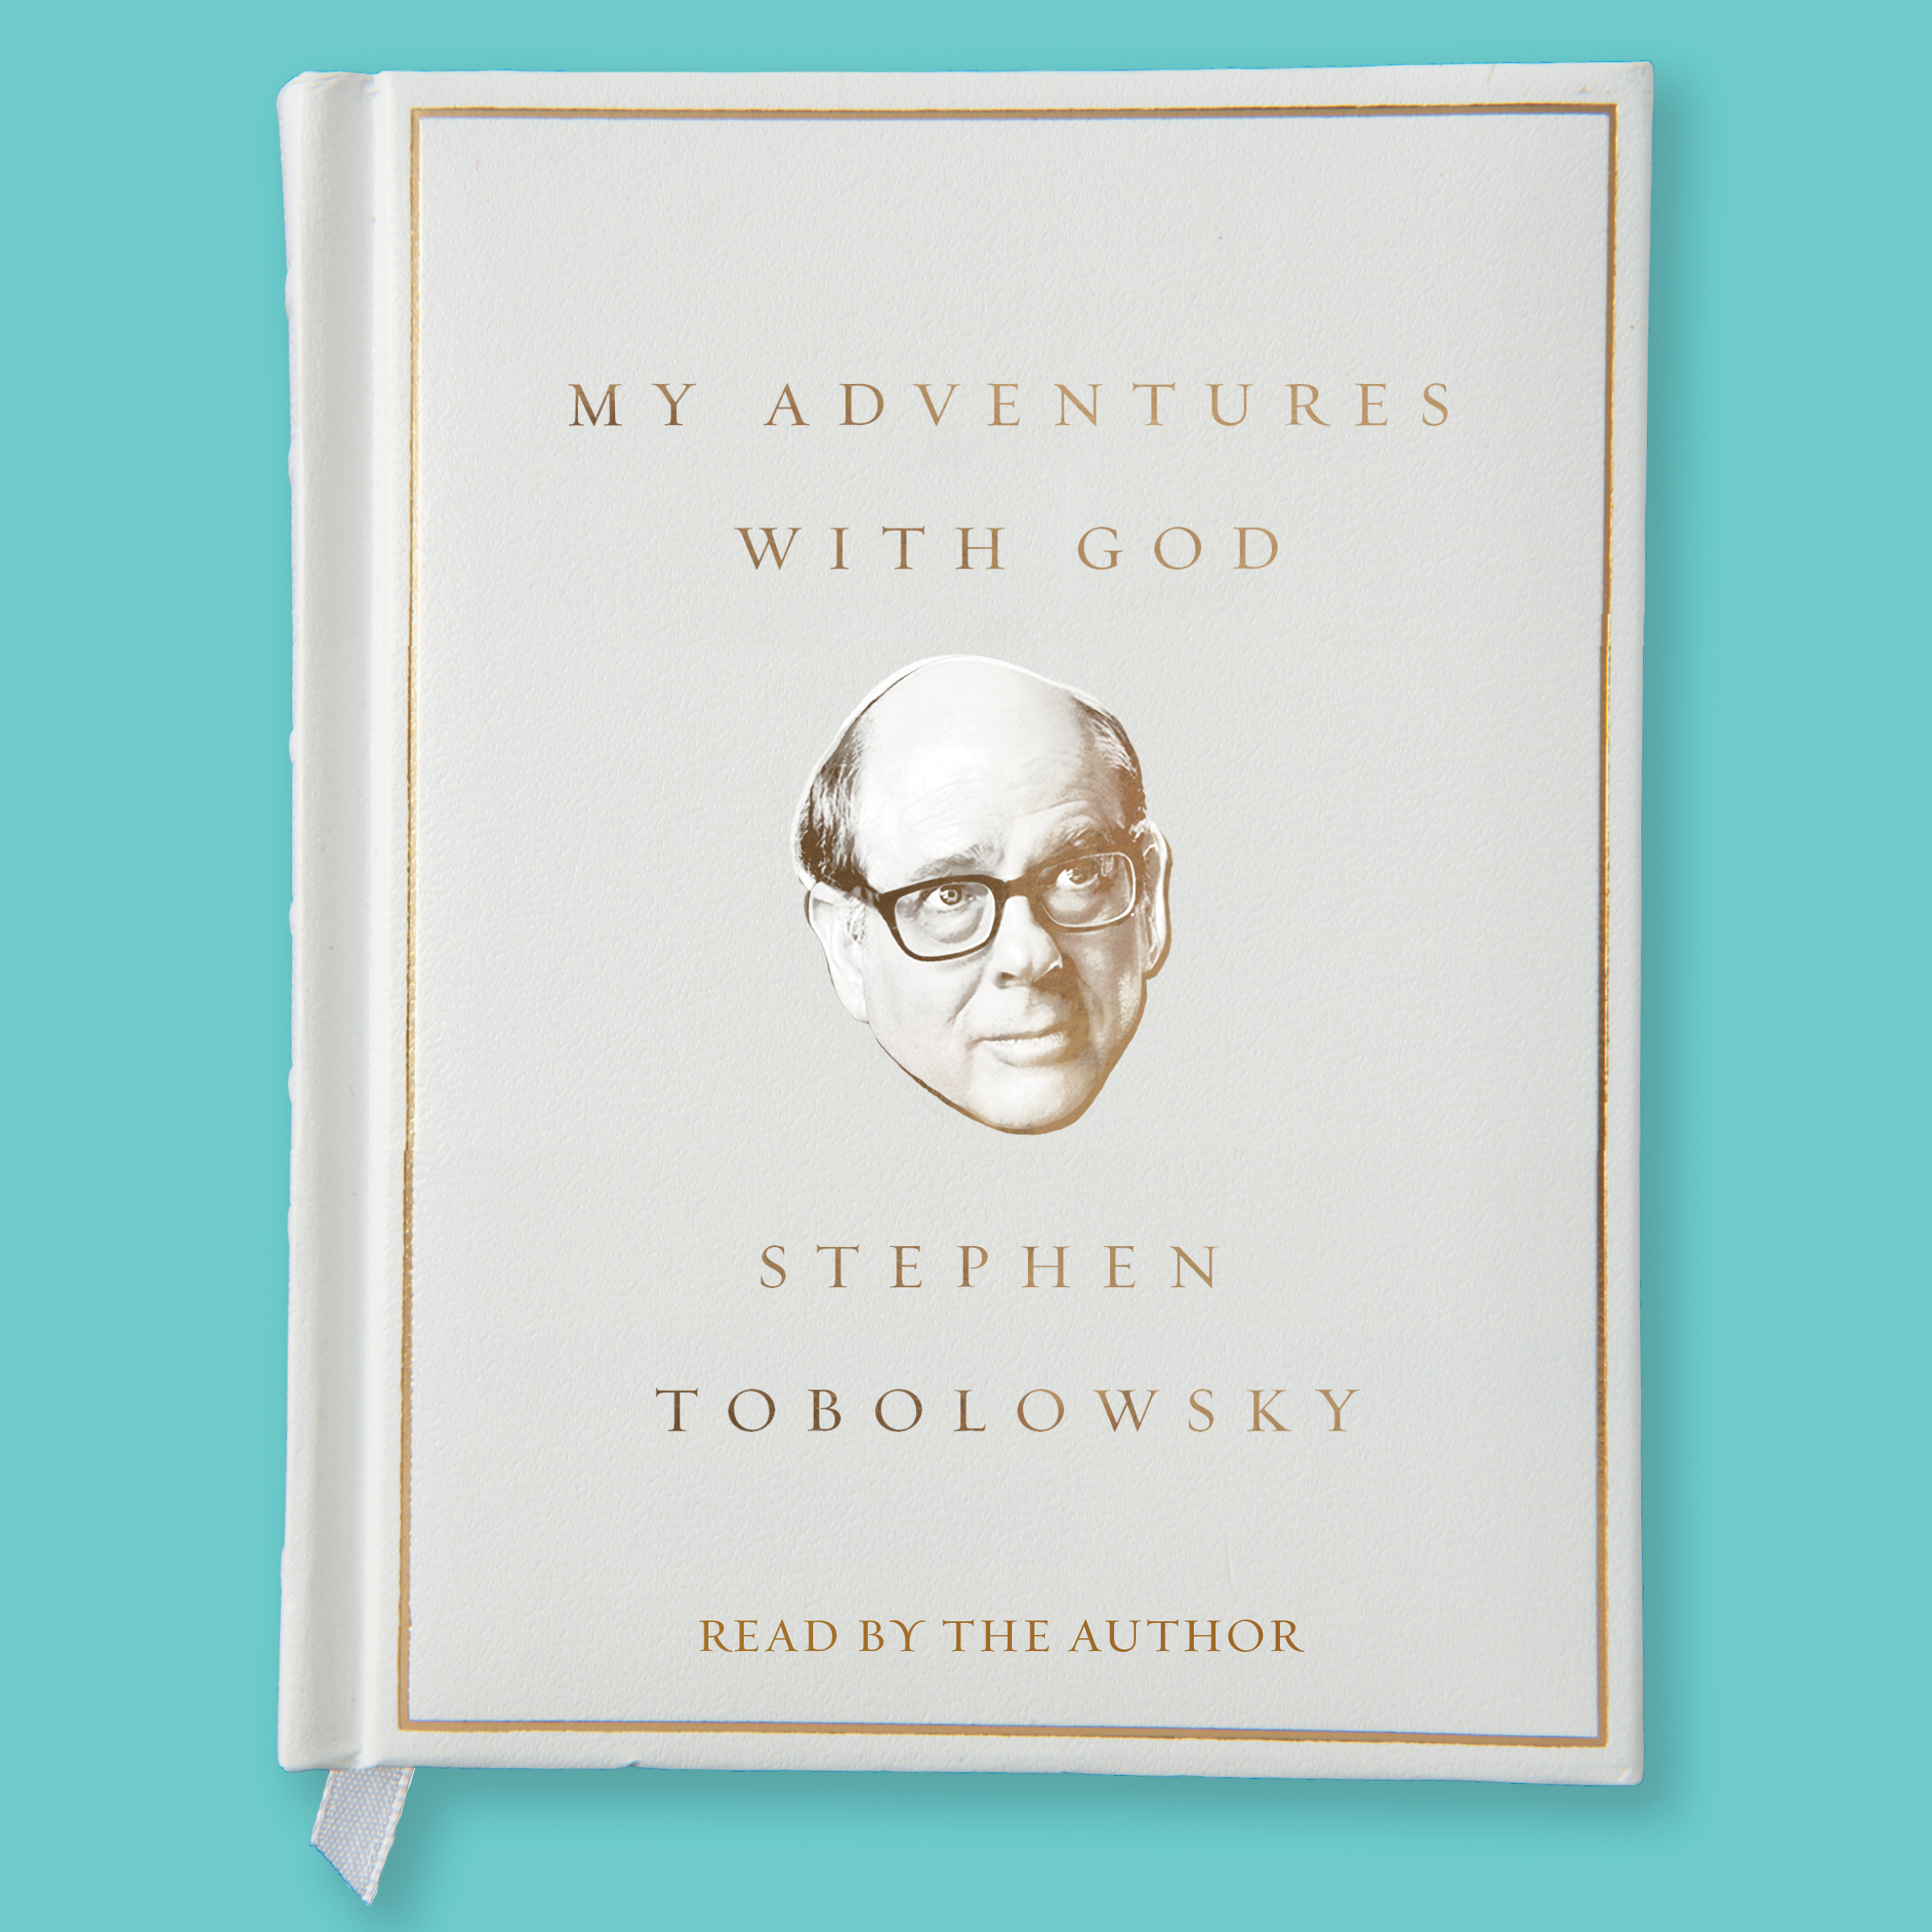 My adventures with god 9781508235224 hr